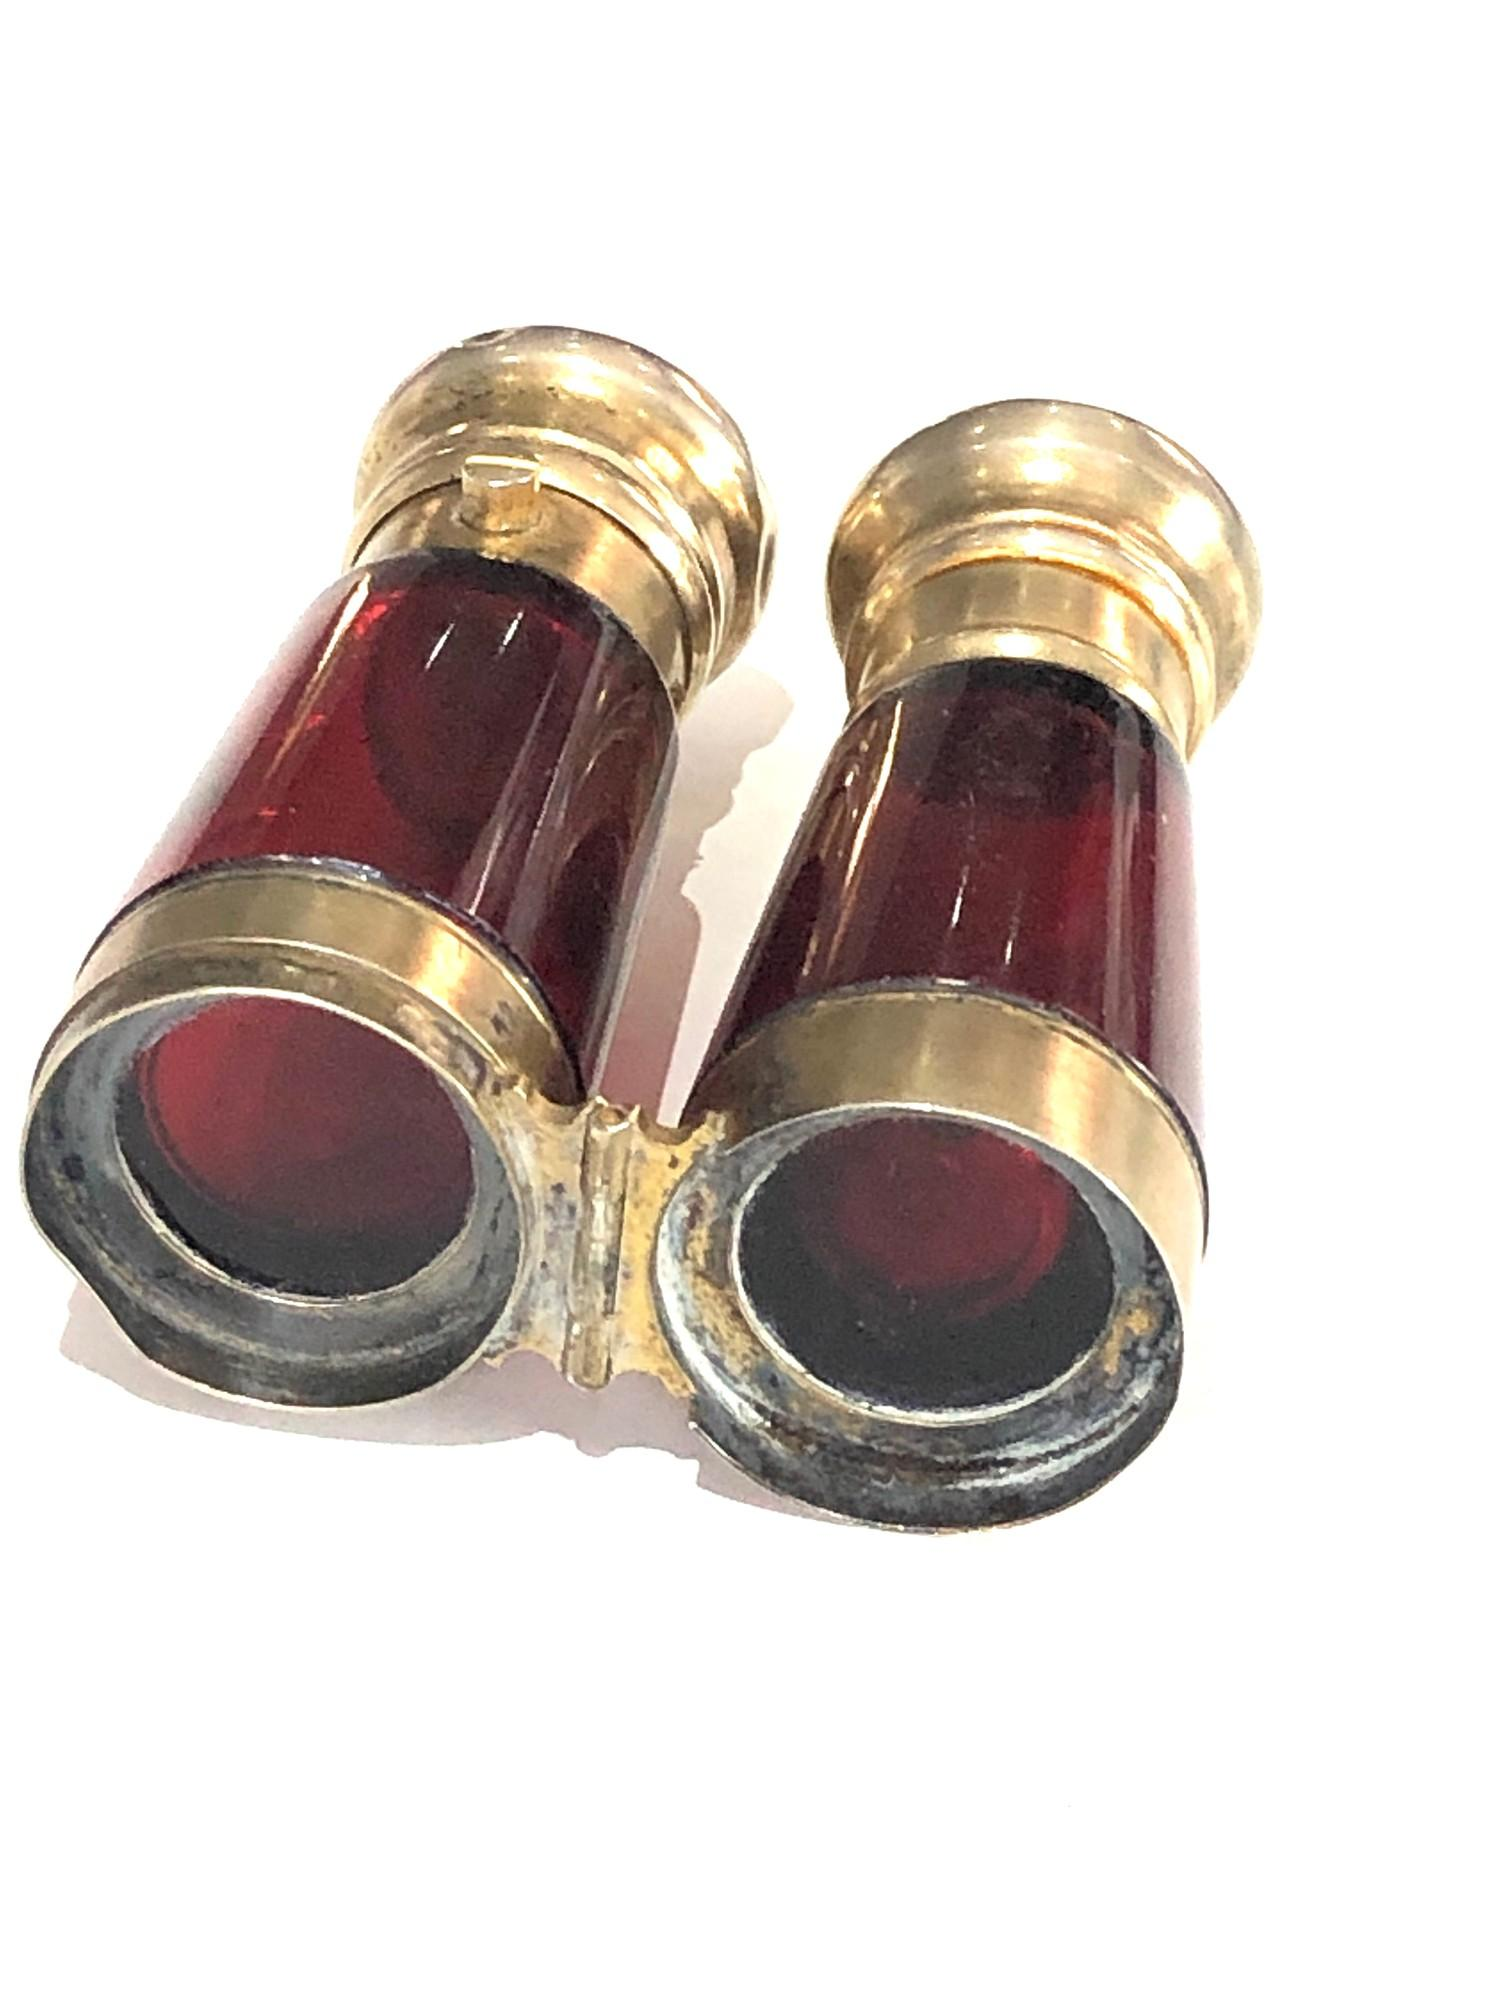 Rare antique ruby glass and silver mounted novelty binoculars scent bottle in original box by Maw - Image 6 of 11